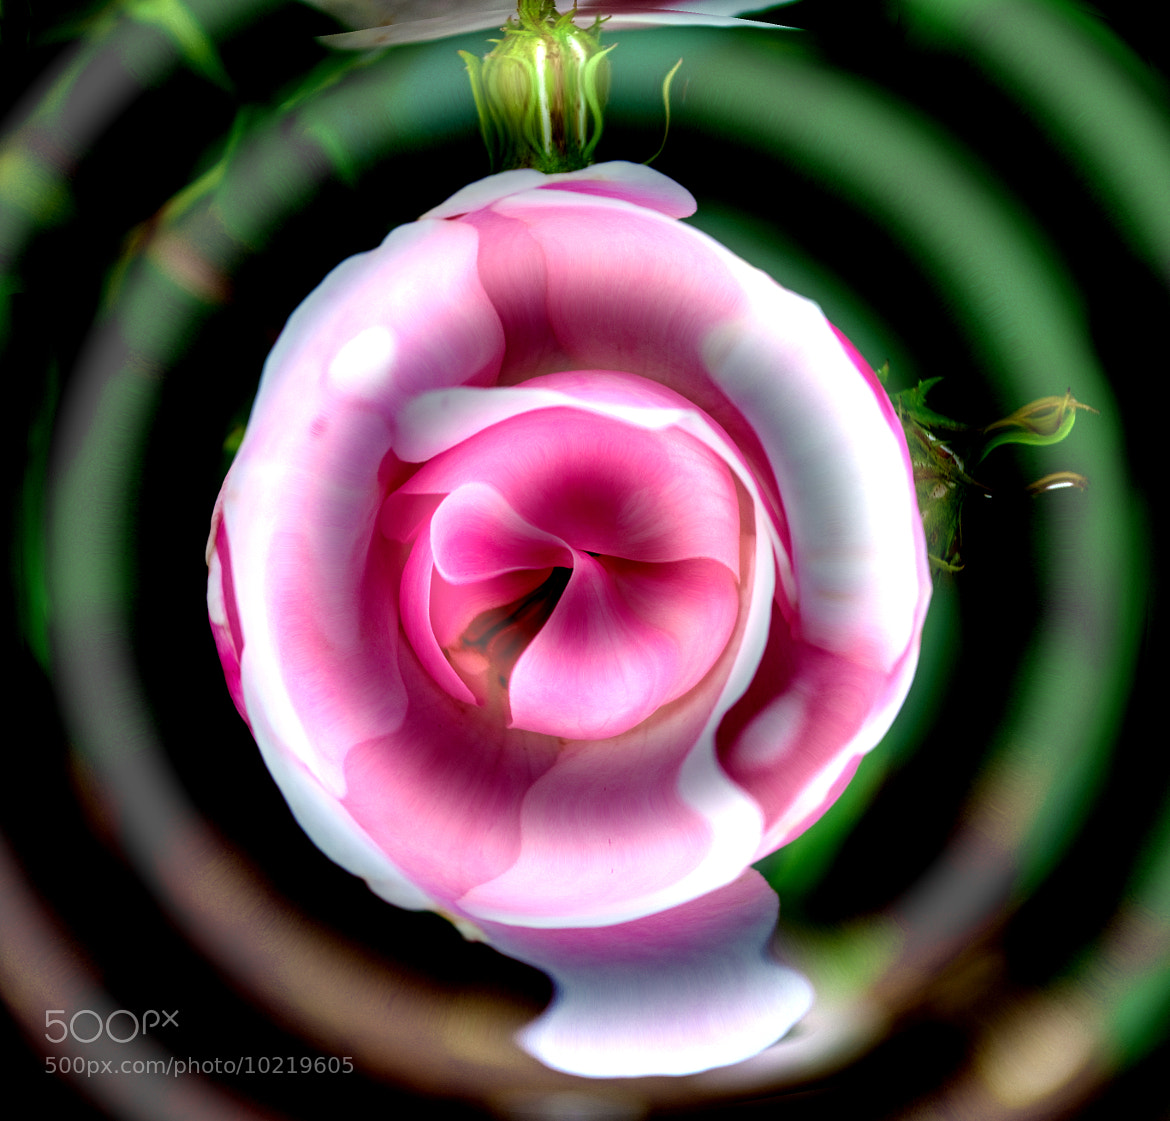 Photograph A Kiss From A Rose by Mark Luftig on 500px